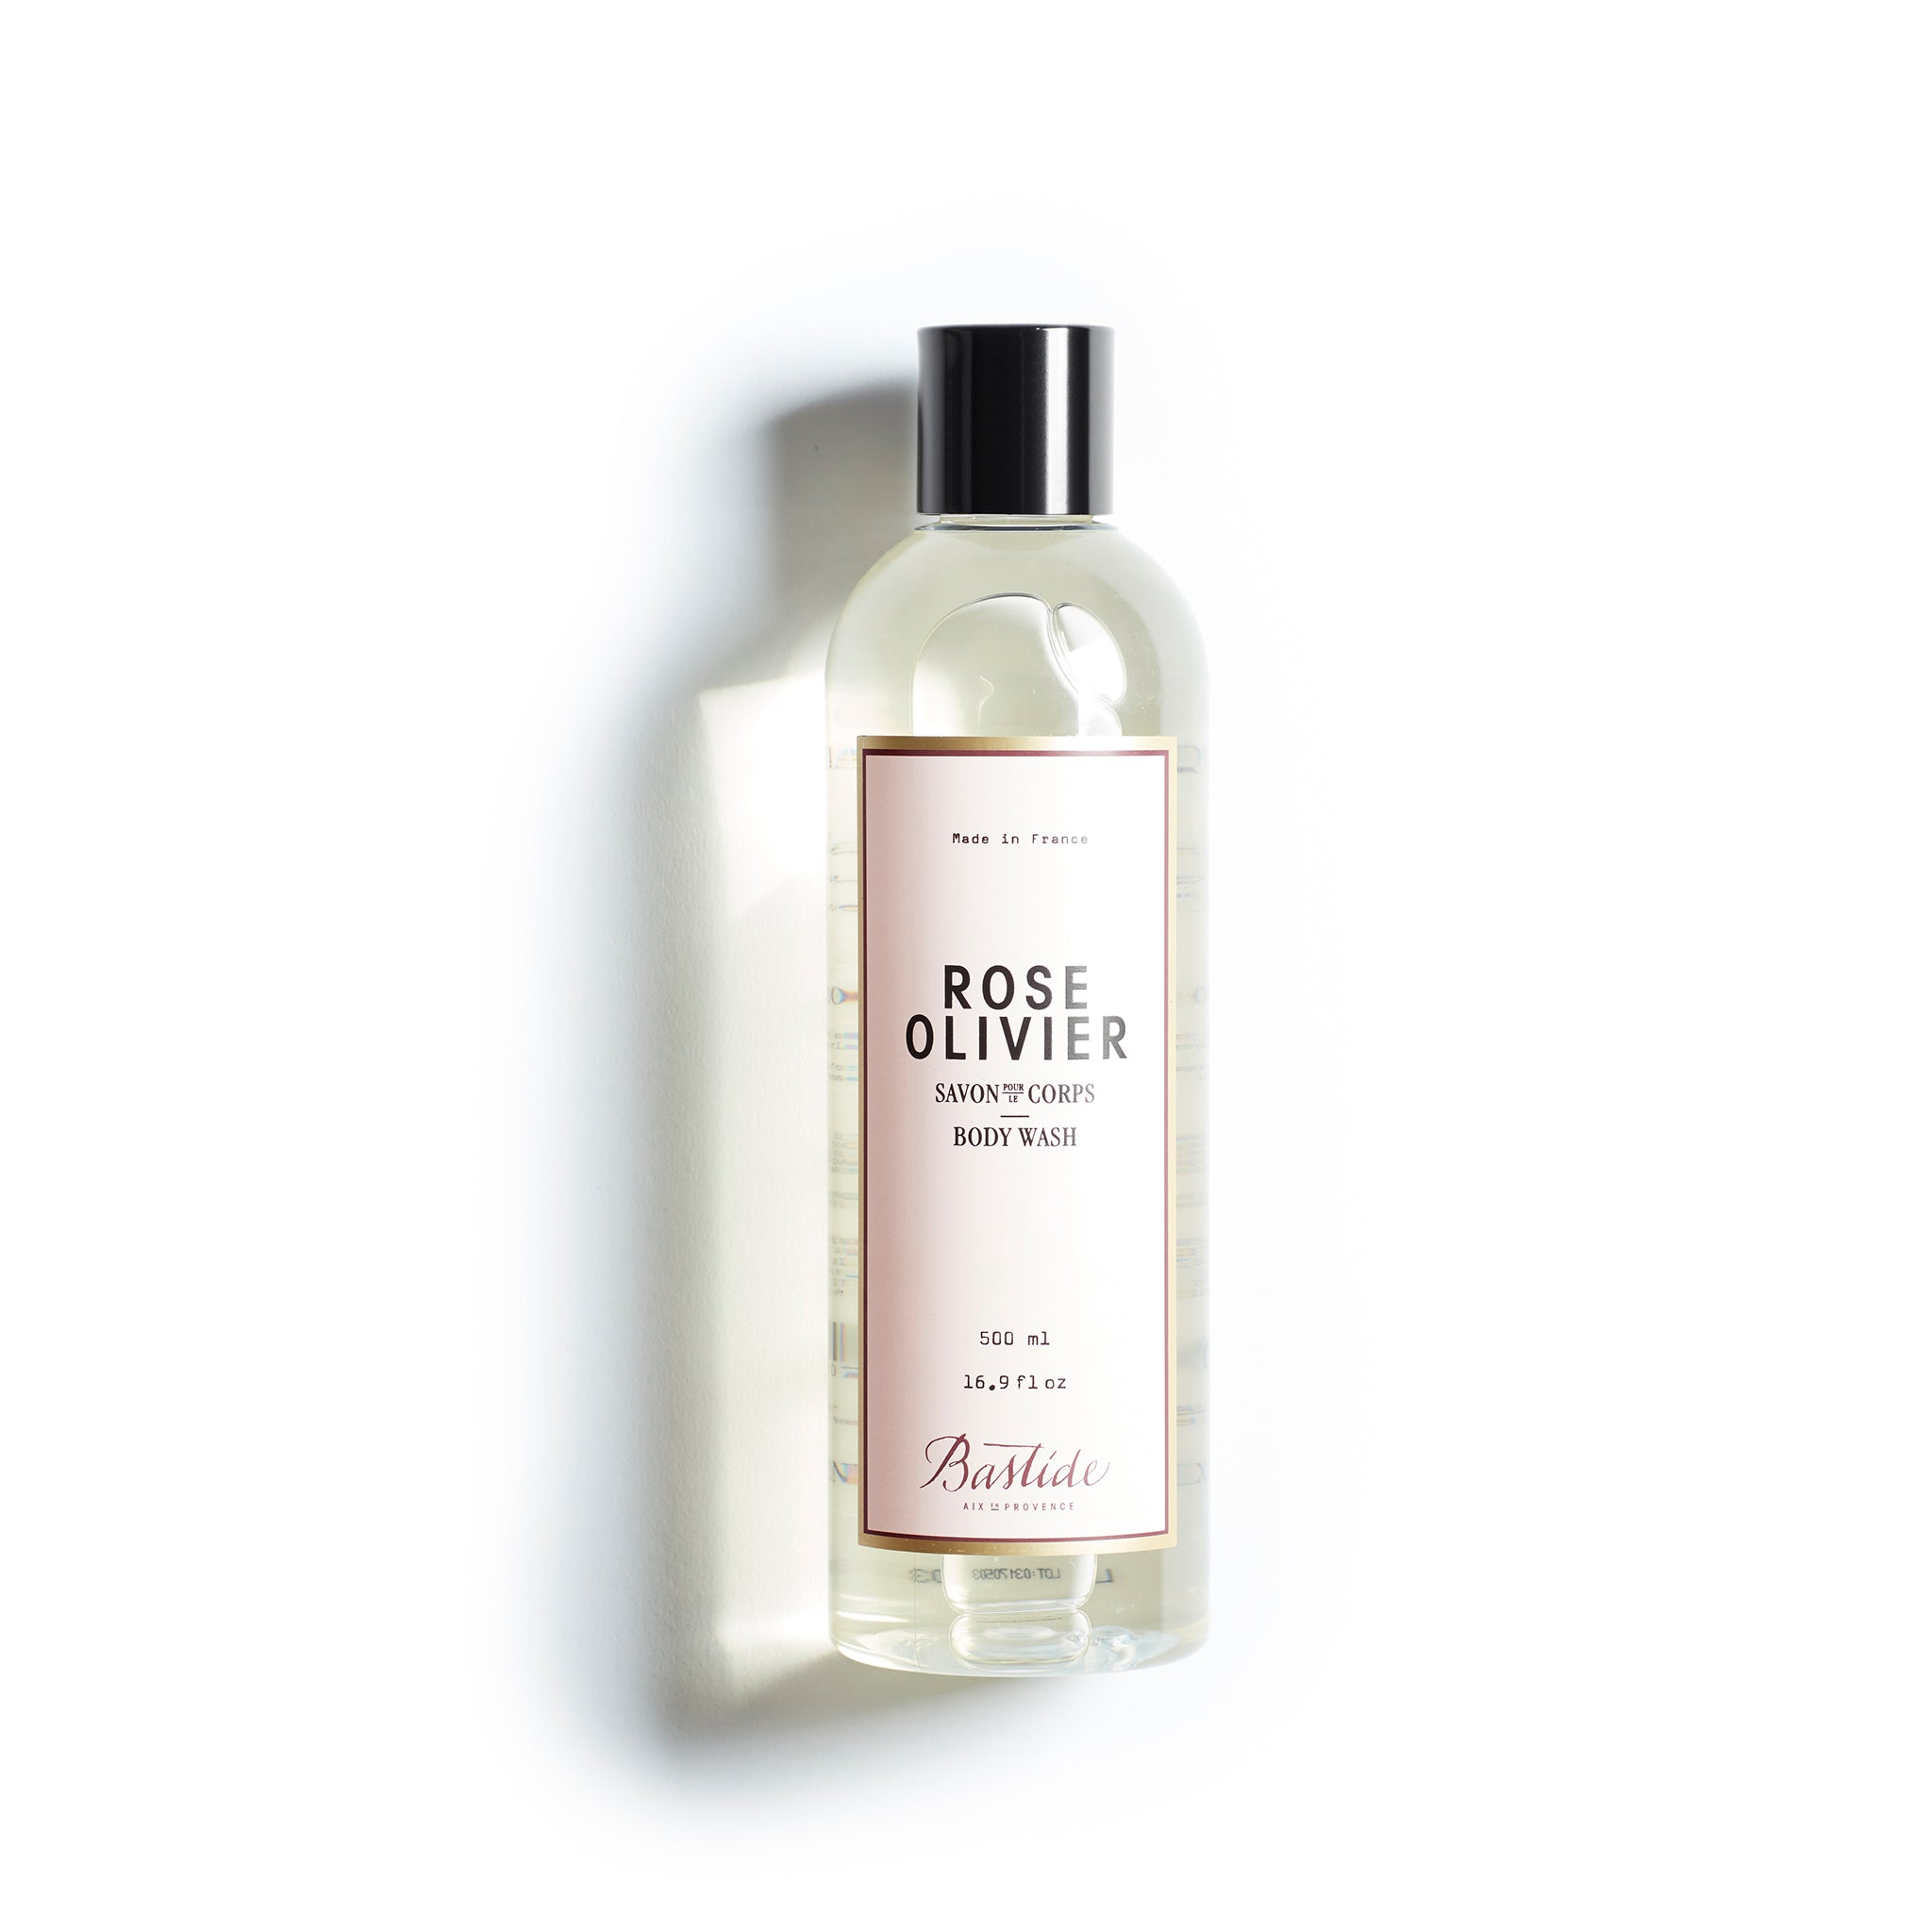 Rose Olivier Body Wash